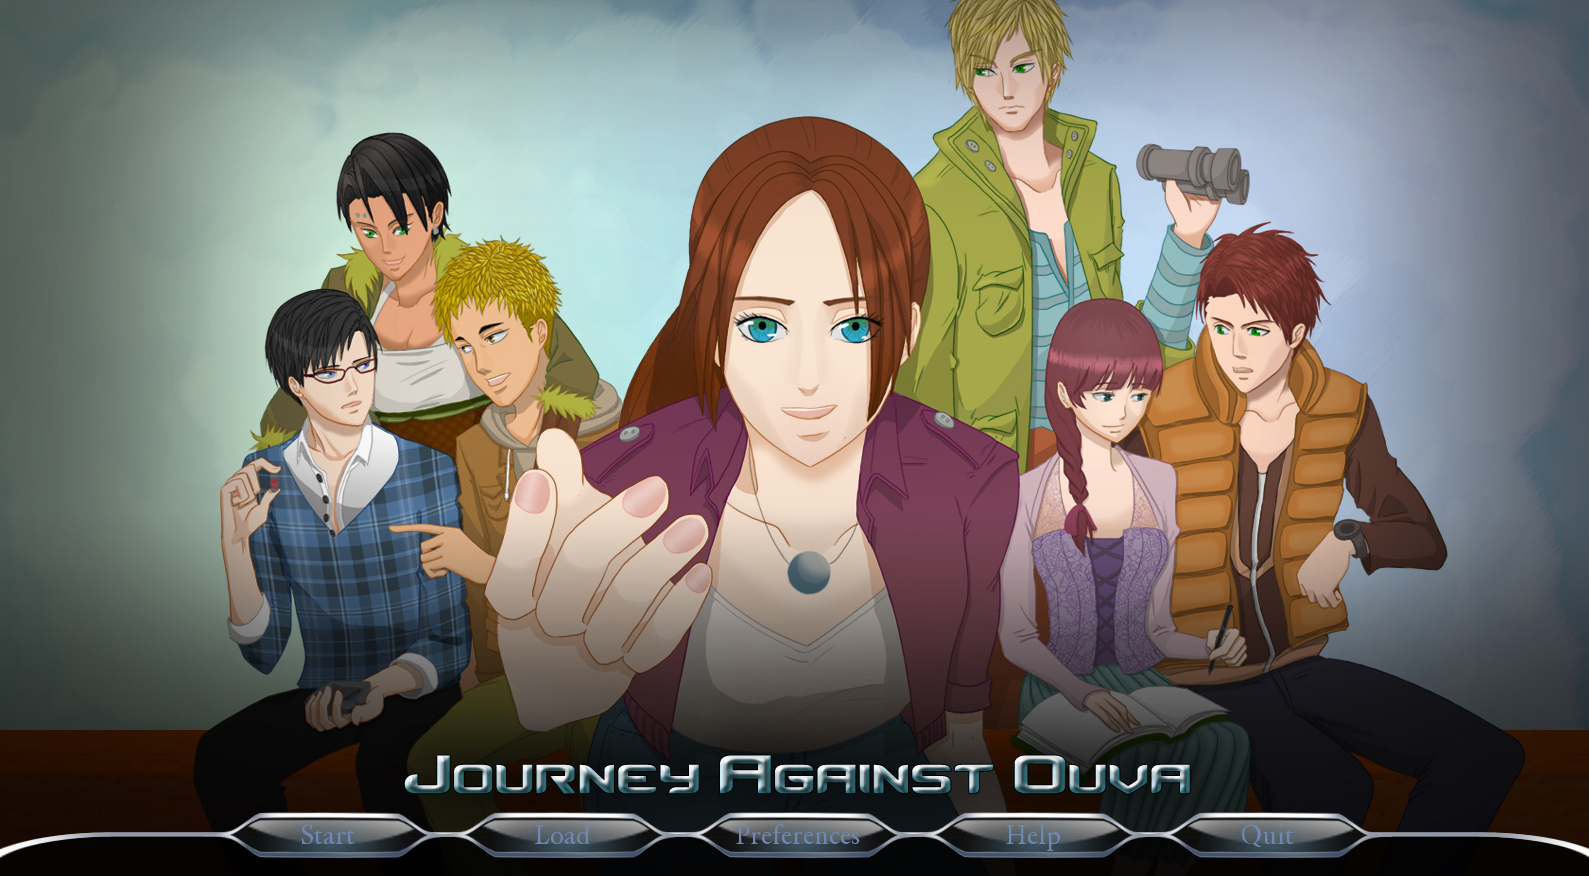 Journey Against Ouva (Demo - Beta)